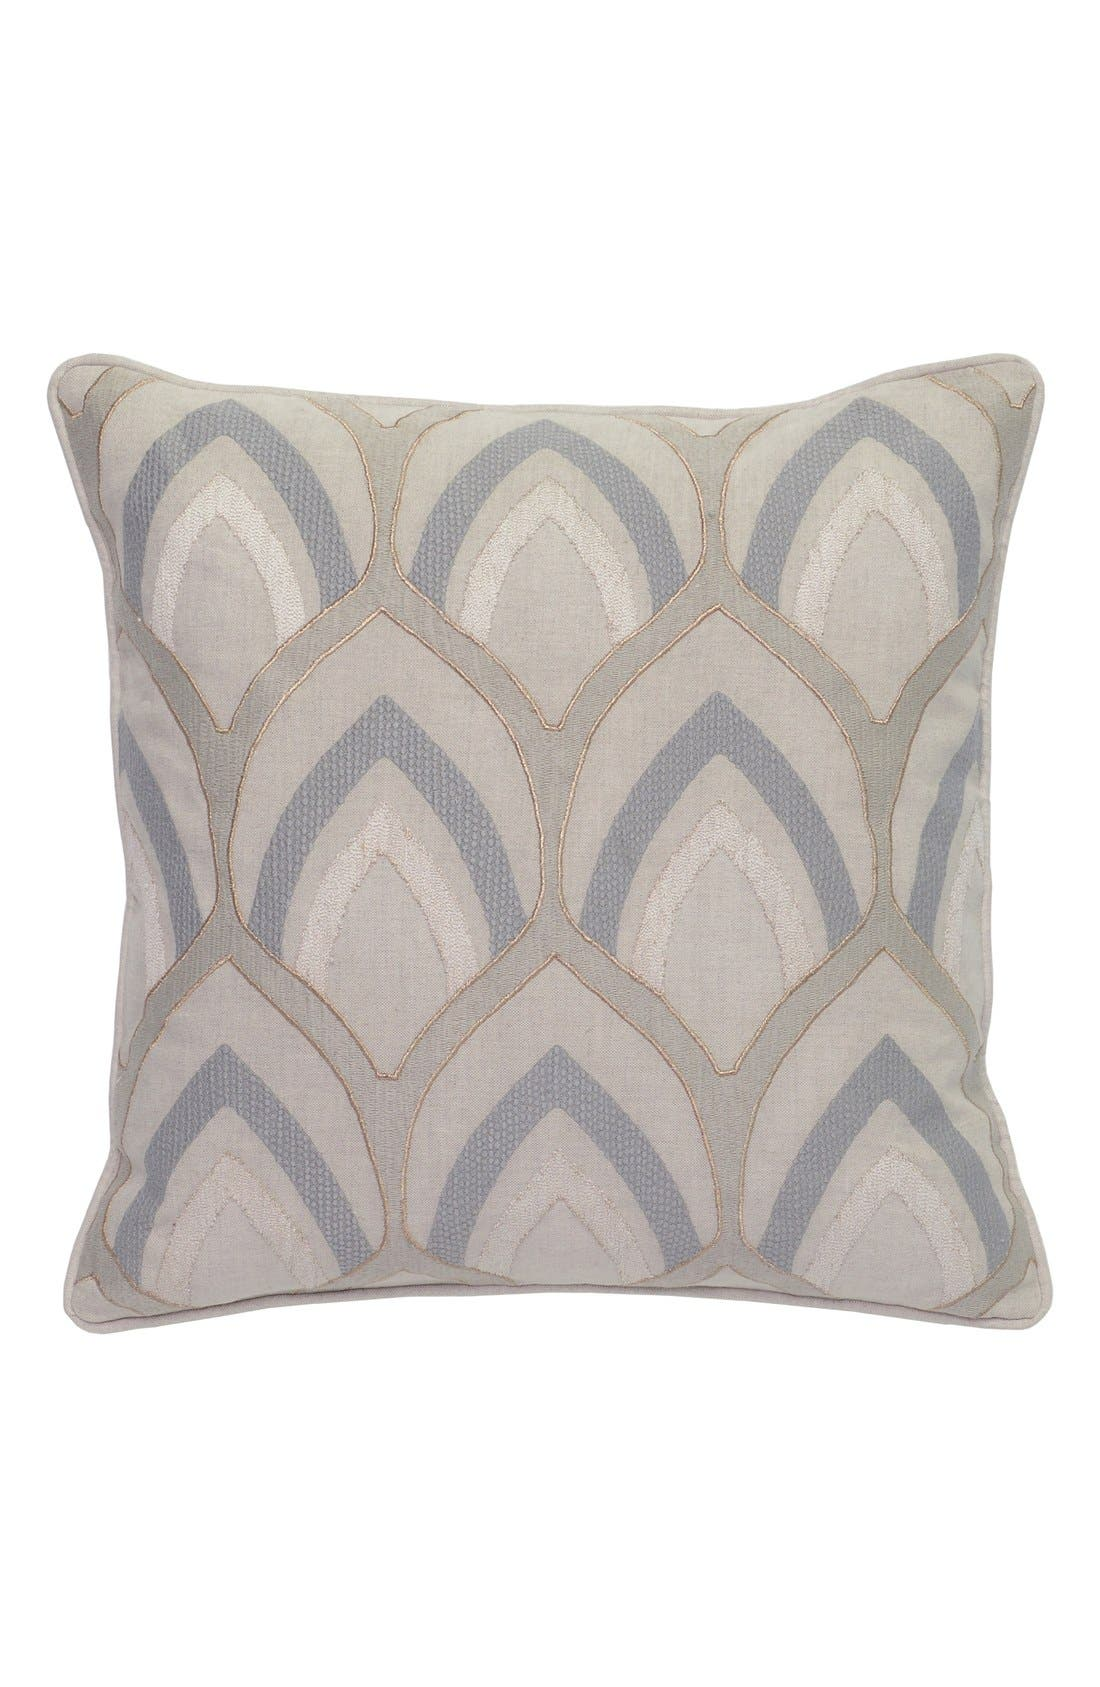 'Hollis' Decorative Pillow,                         Main,                         color,